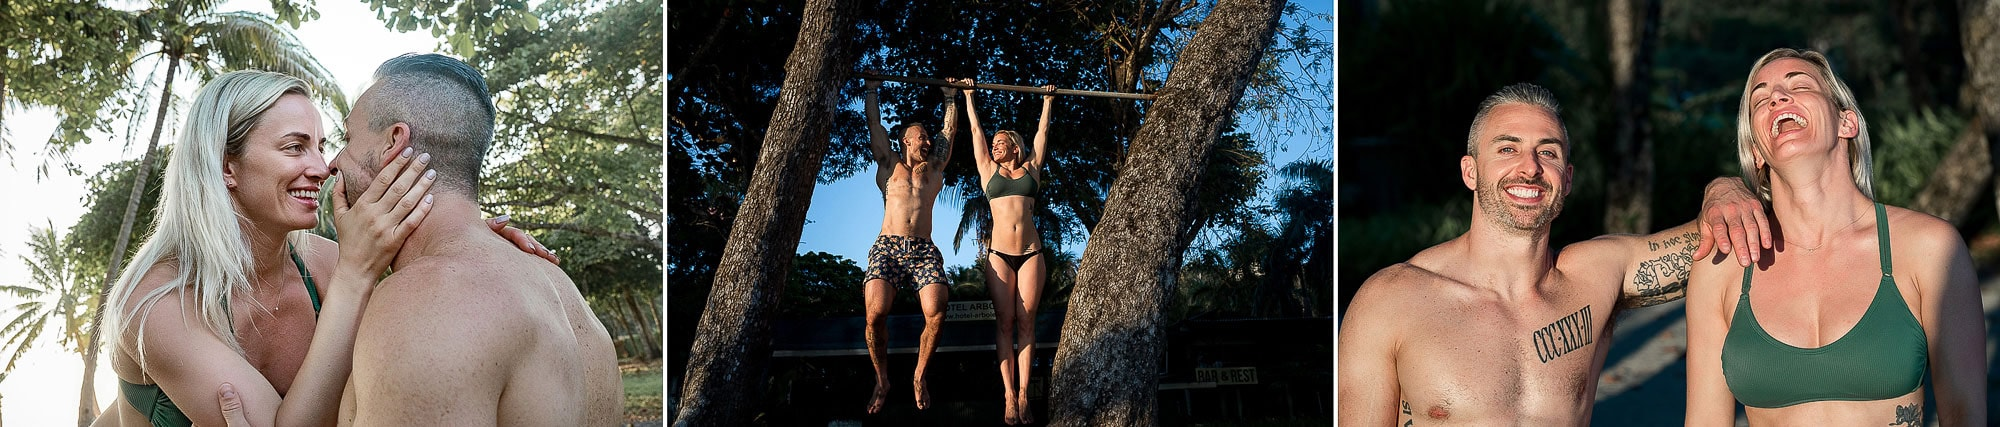 Hanging out on the pull-up bar! Getting engaged.